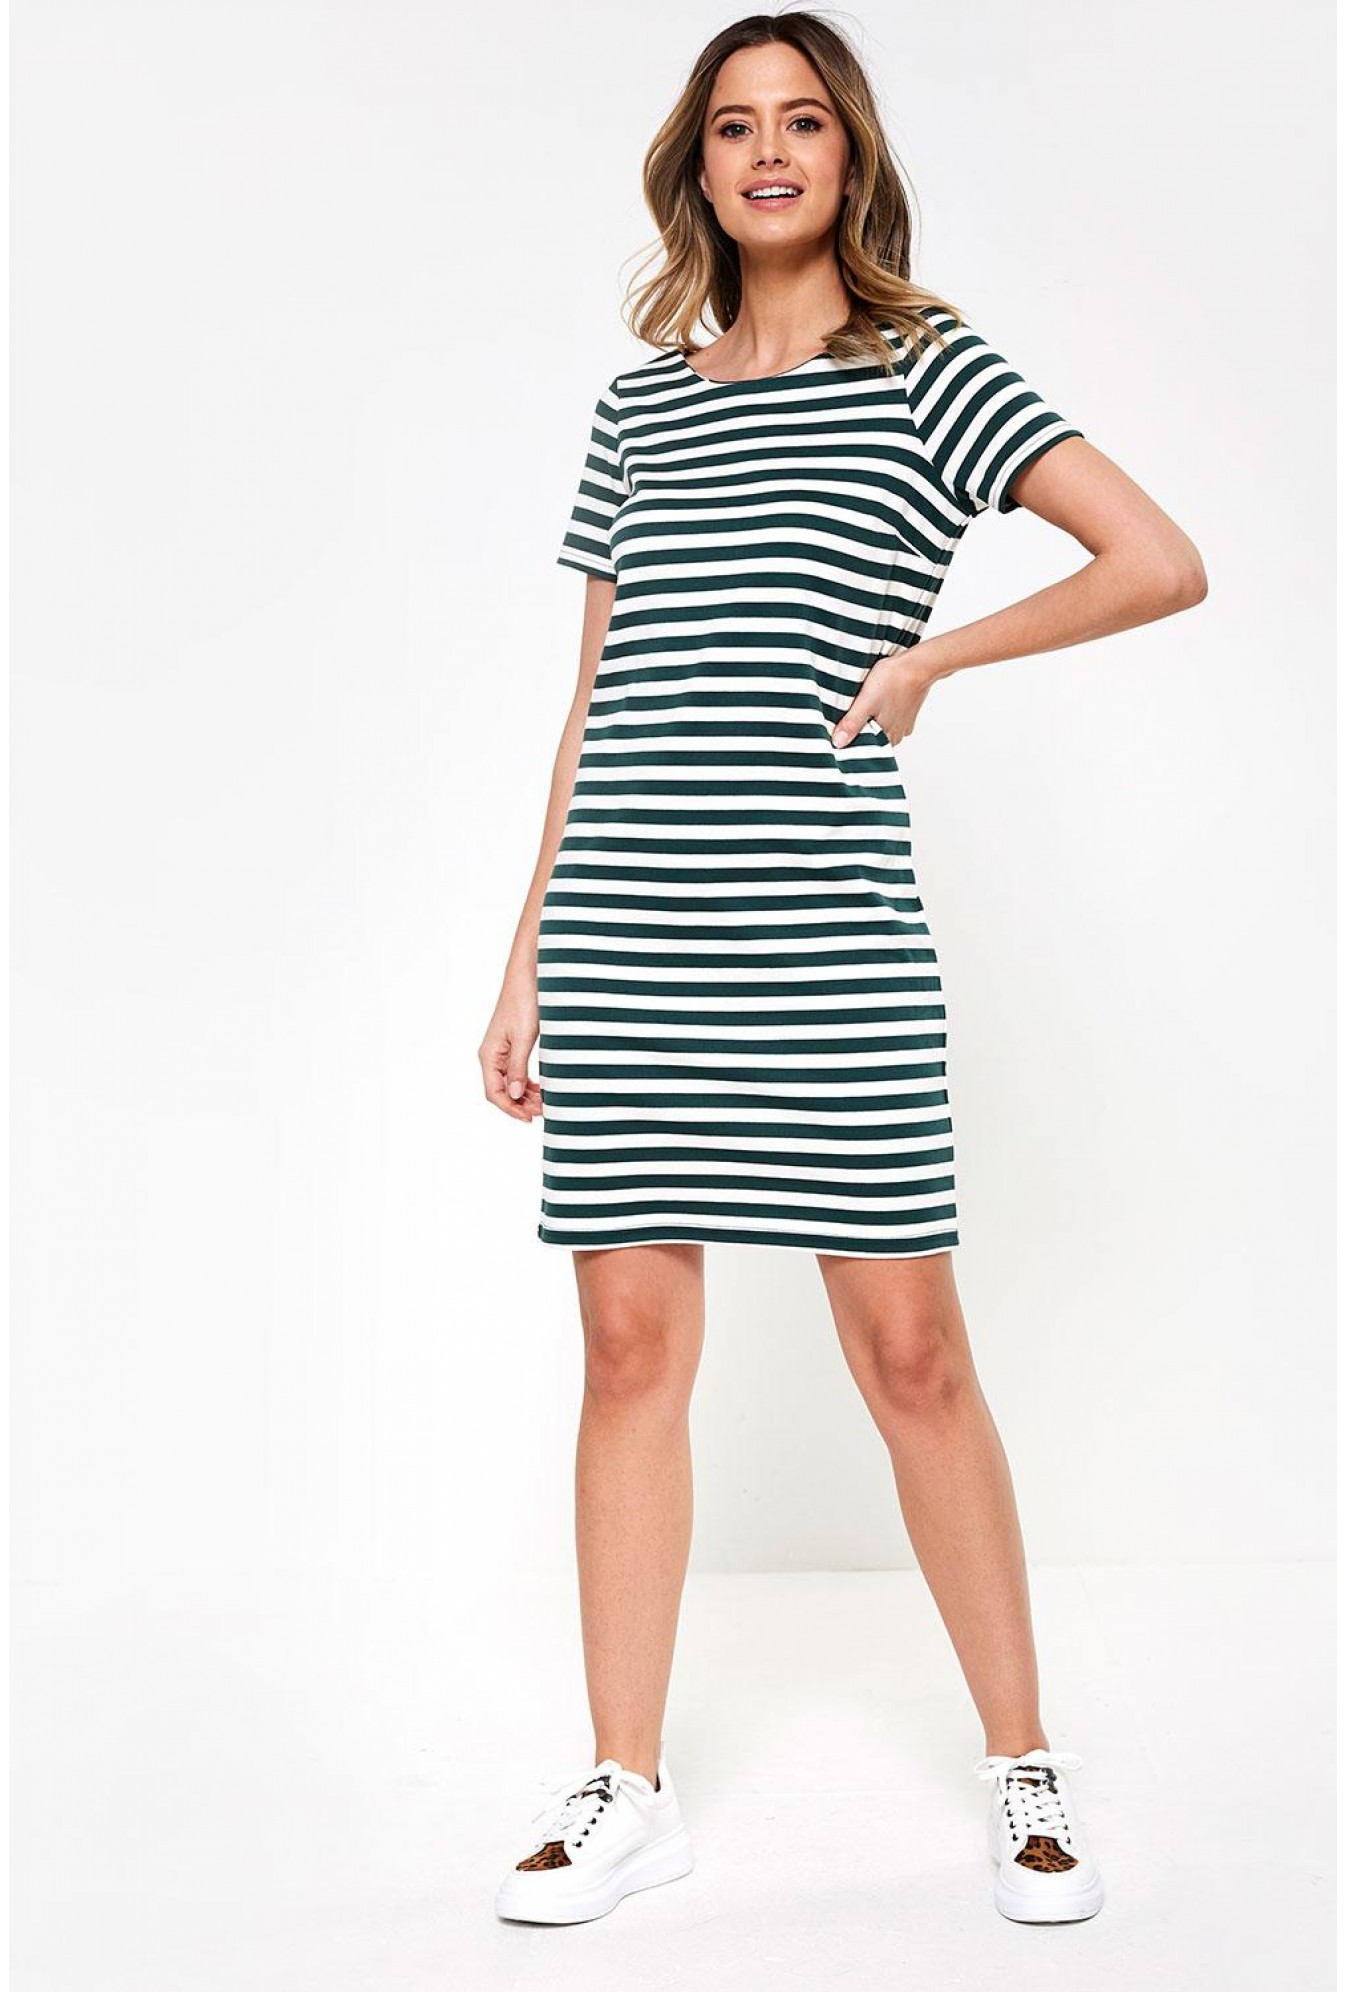 1a00694af8e Vila Tinny New S/S Dress in Baby Blue Stripe | iCLOTHING